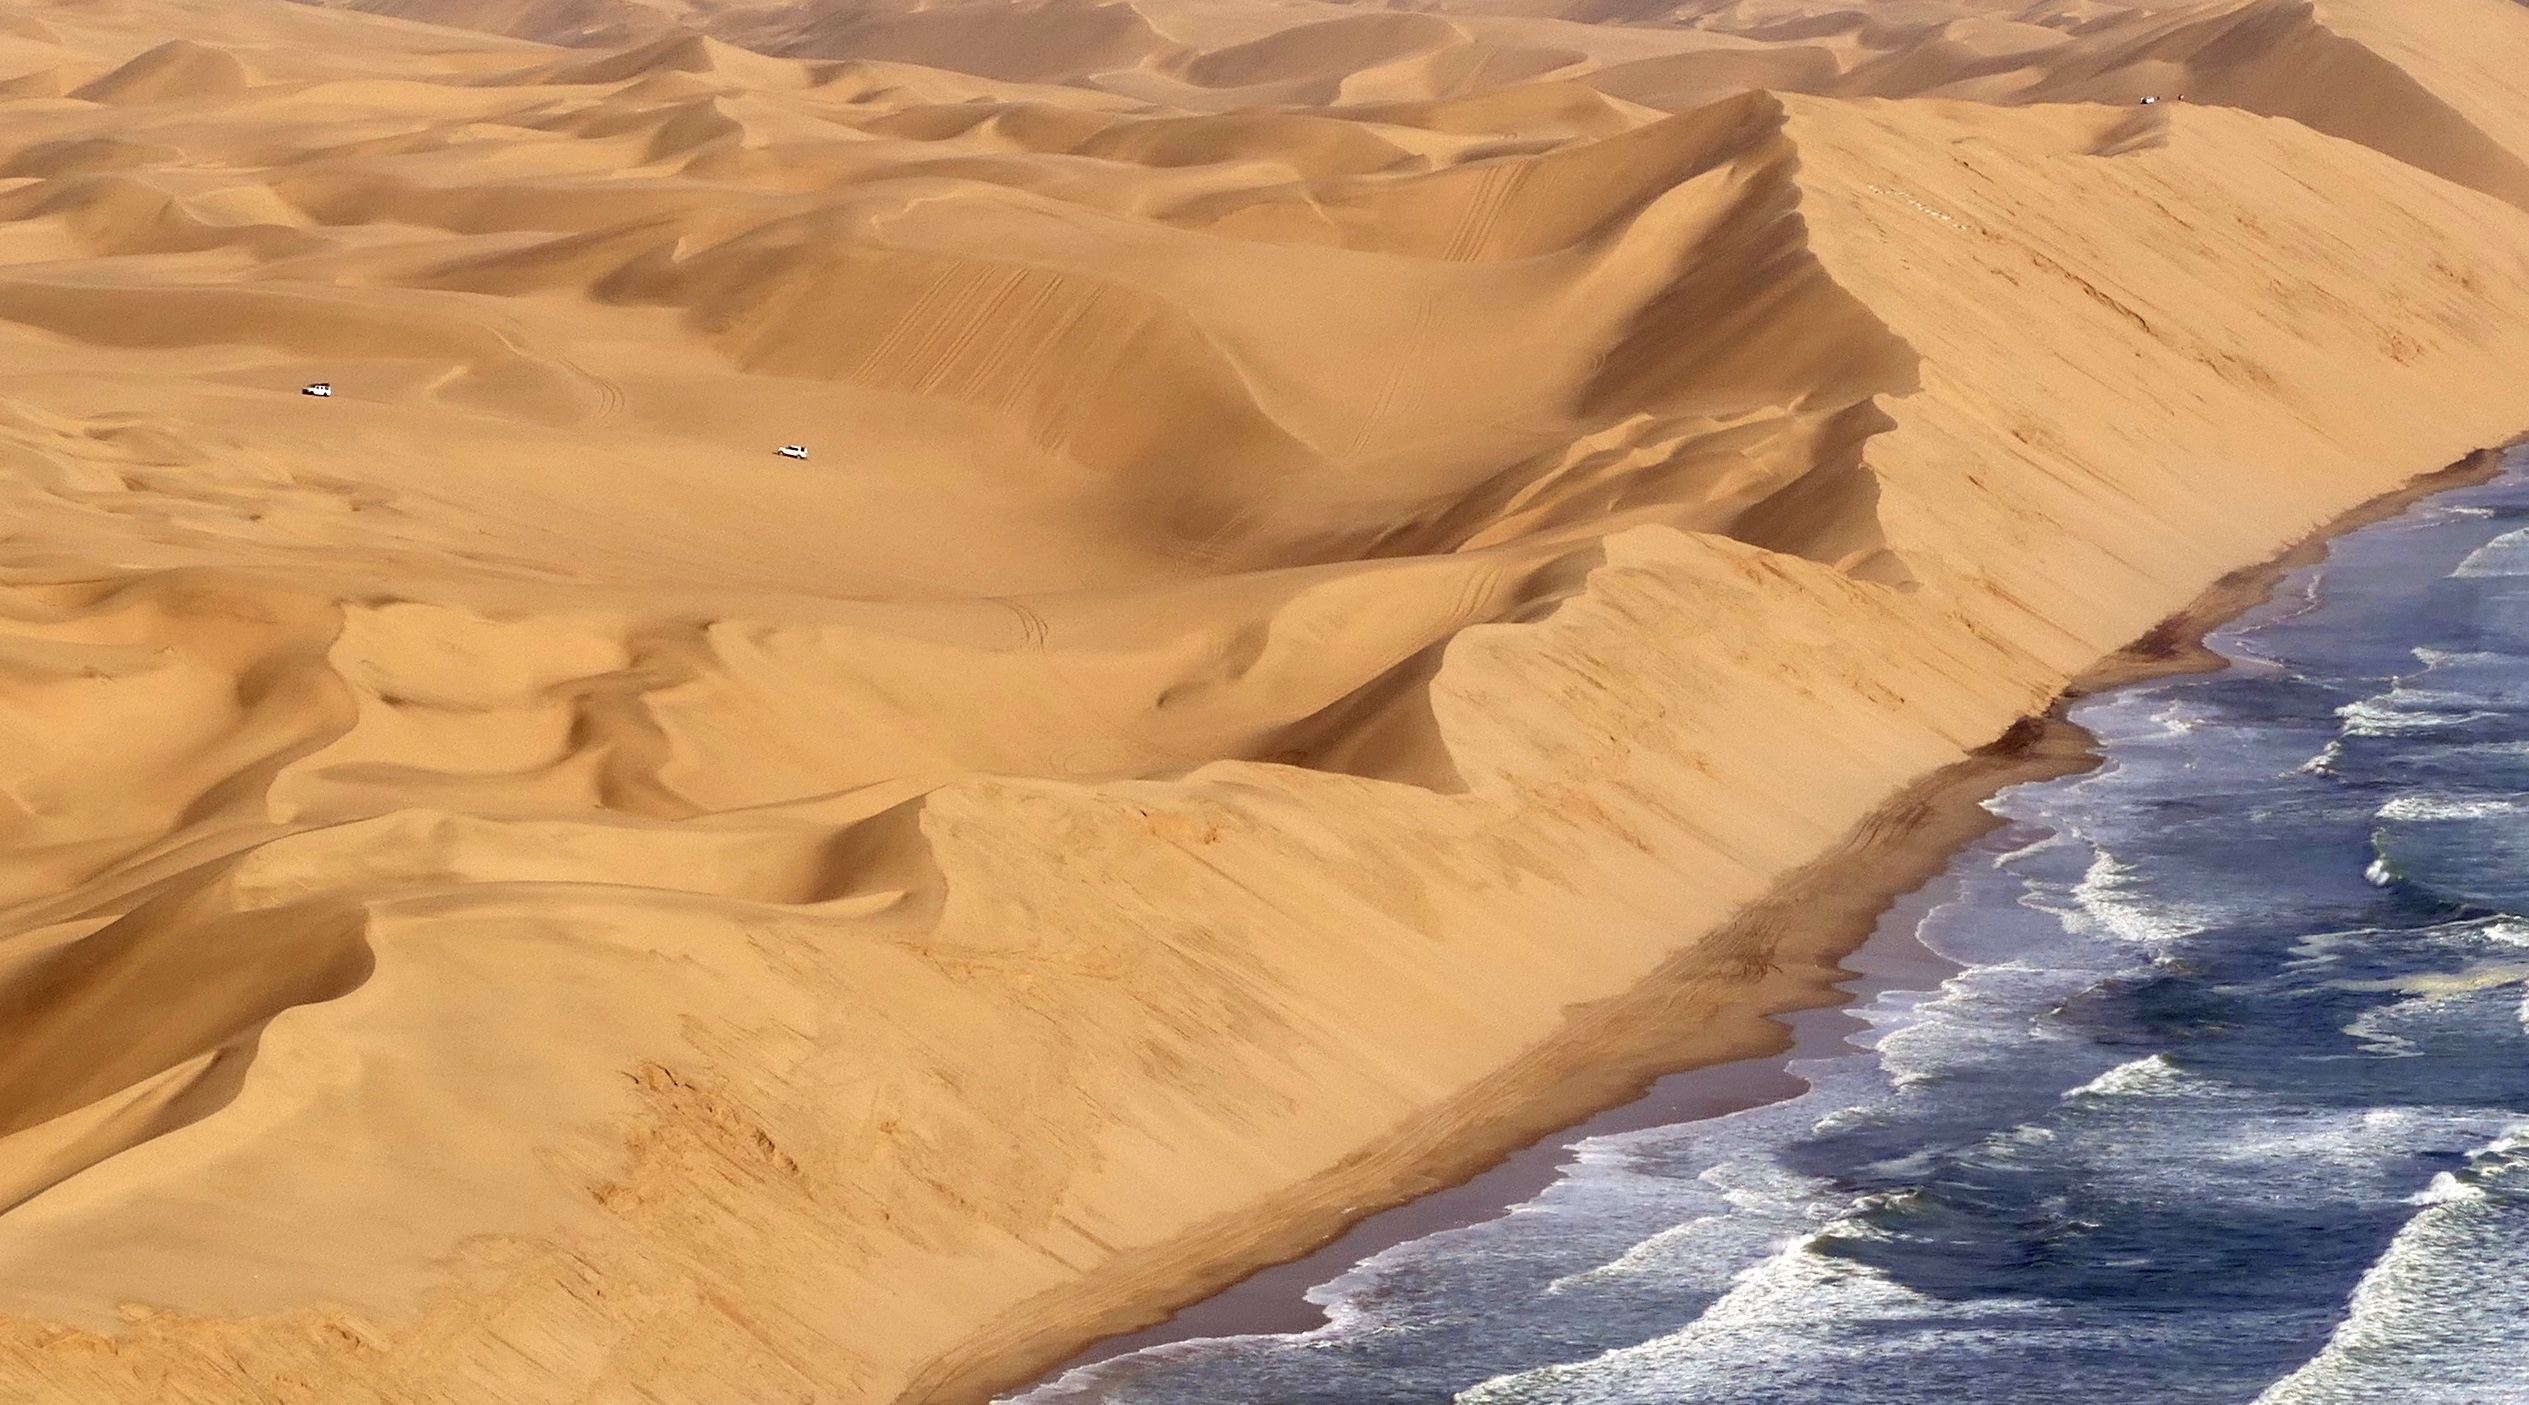 Dunes in Namibia [2529x1405] (by loraineltai)